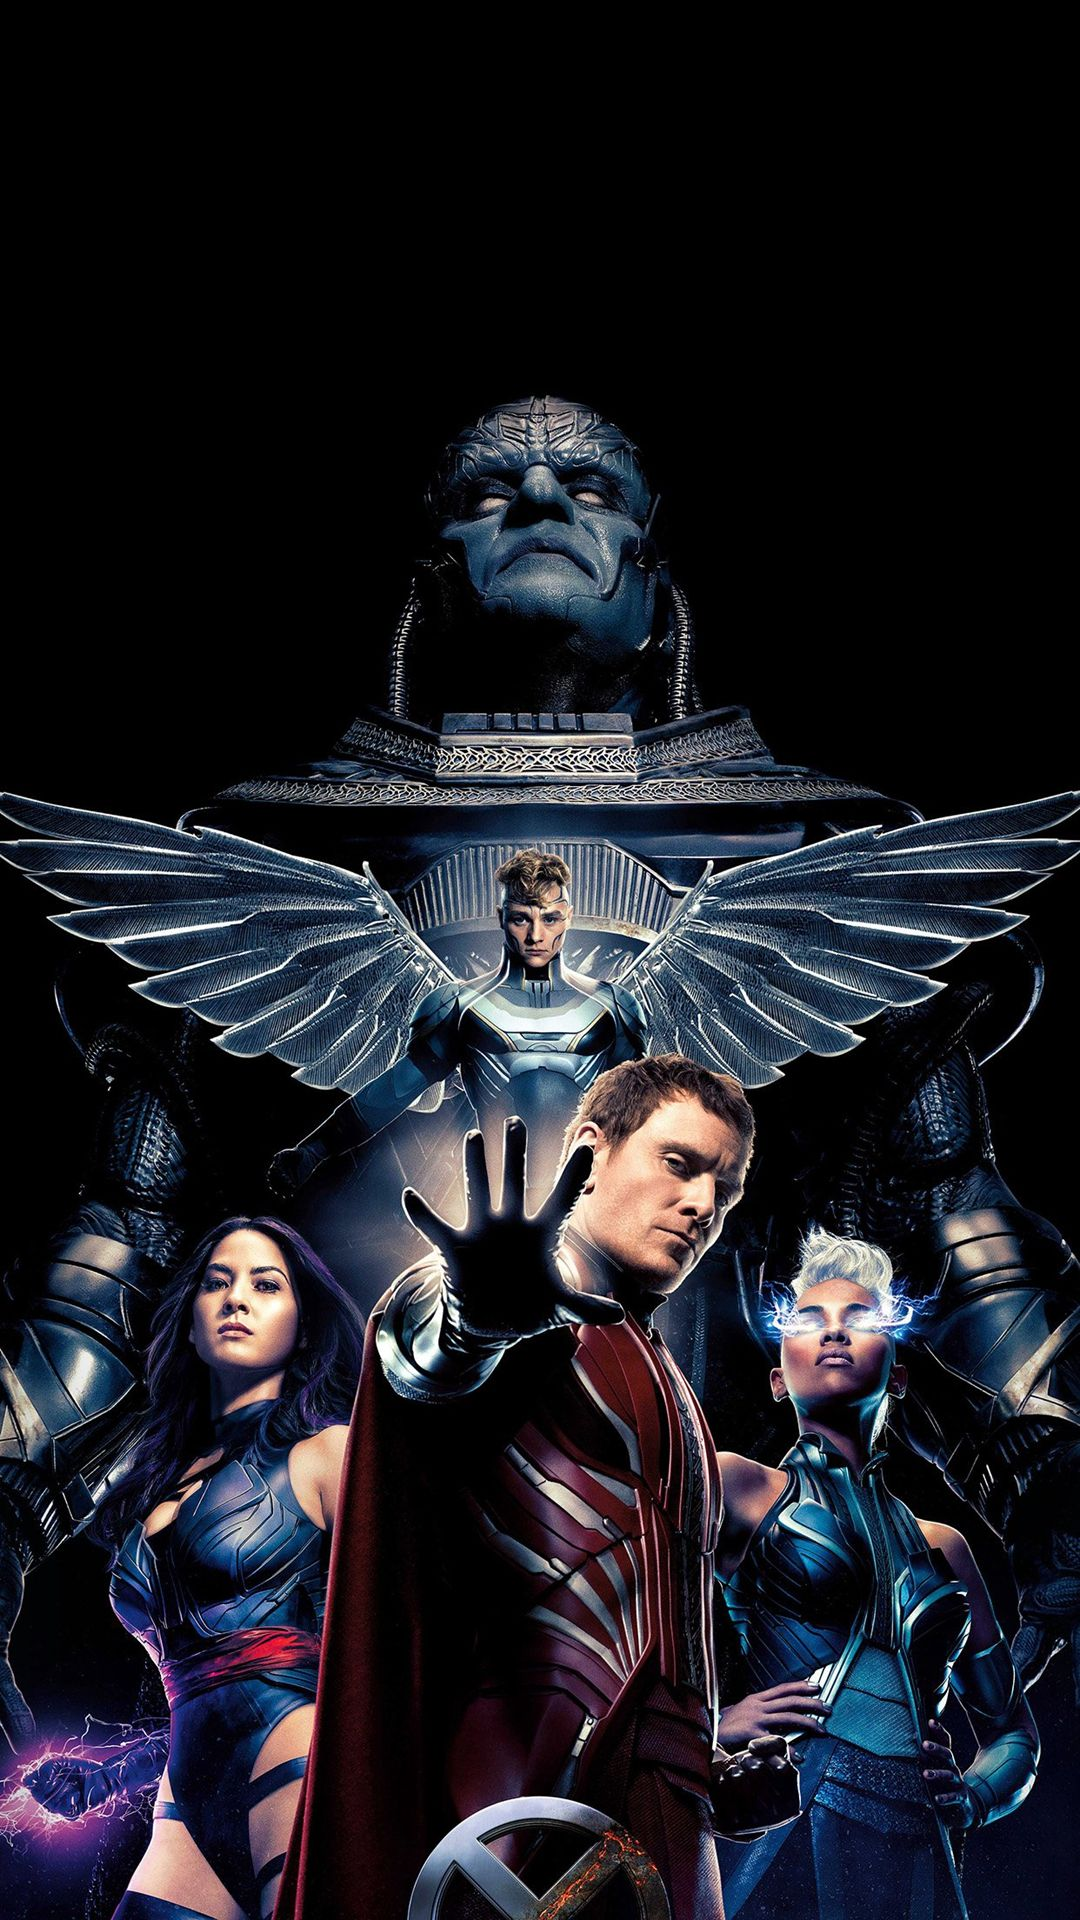 1080x1920 Xmen Apocalypse Poster Film Hero Destroy #iPhone #6 #plus #wallpaper ...